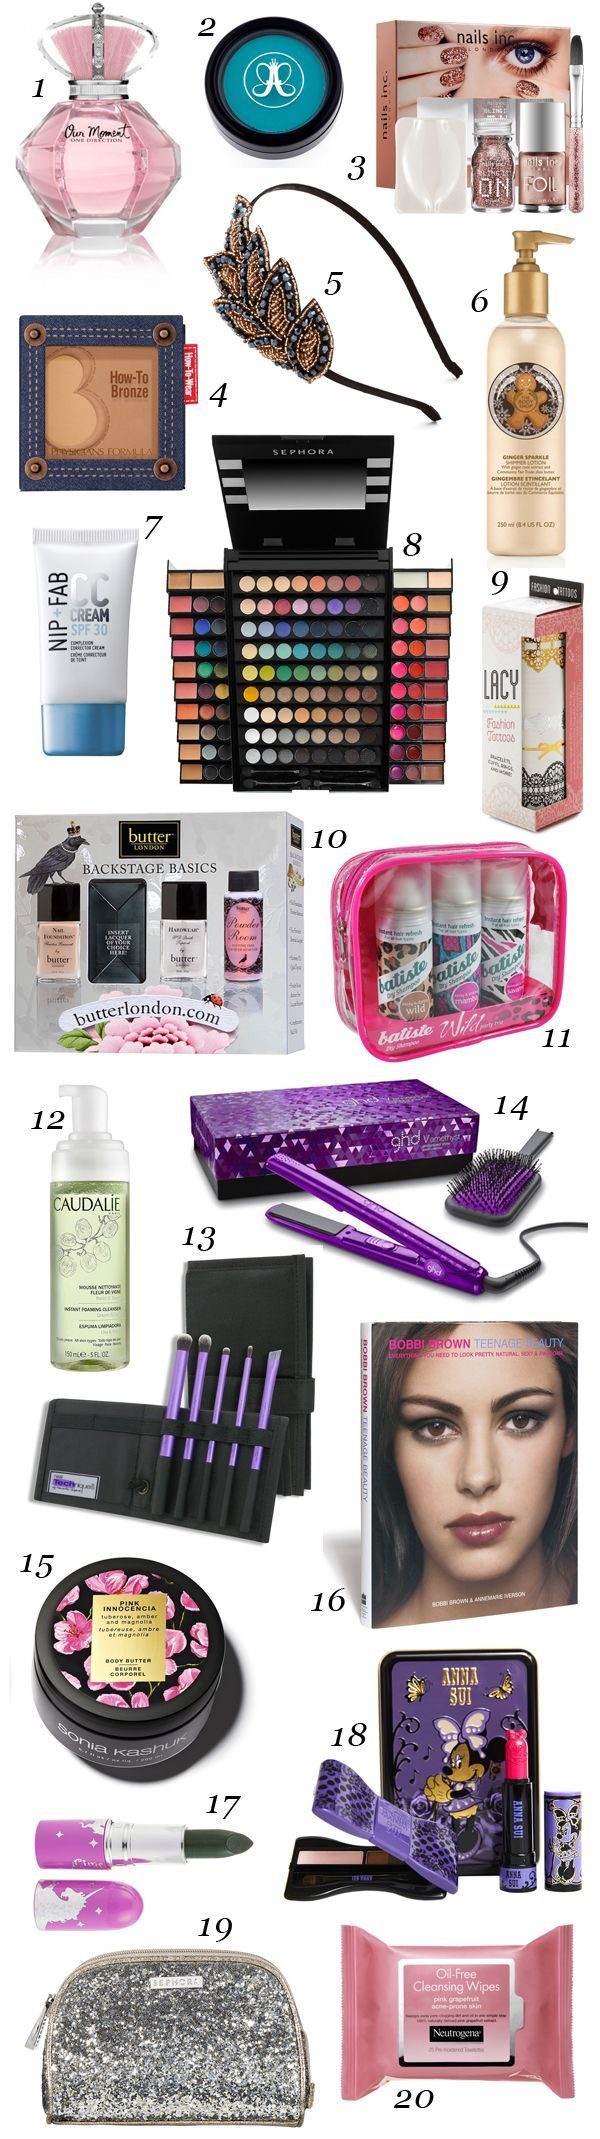 20 Beauty Gift Ideas For Teens And Tweens Birthday